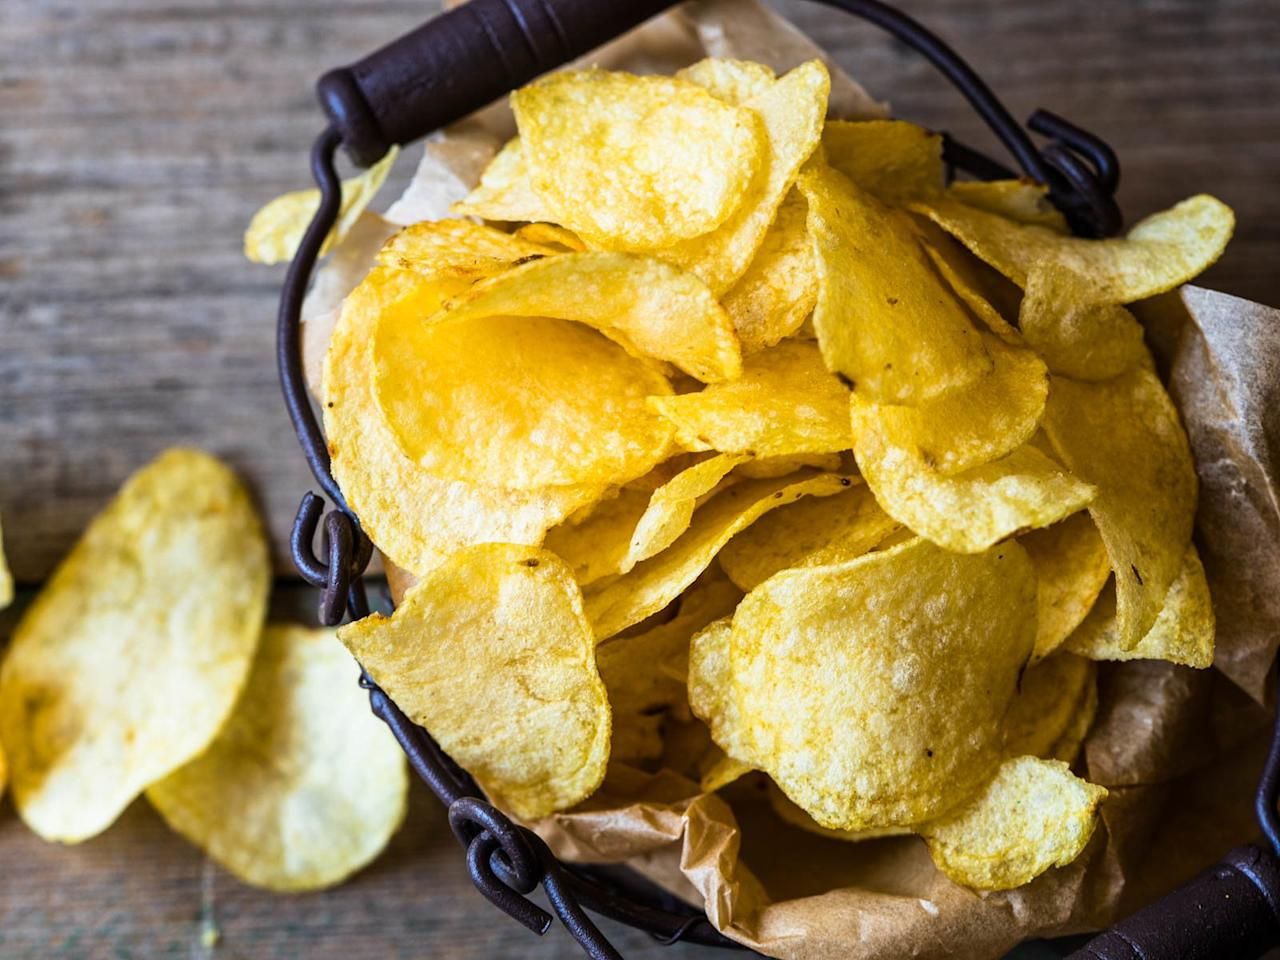 """<p>""""Because we live in a particularly warm and humid climate, our refrigerators are one of the few places that remain consistently cool and dry, making them a perfect spot to store your potato chips, a food that's very prone to getting stale. When refrigerated, potato chips stay crisp and don't get soggy since they have little exposure to everyday moisture. To take it to the next level, you could even freeze potato chips if you wanted too, since most of the moisture is taken out of the potatoes during the dehydration process so there's little to not water left to freeze them over in those low temperatures."""" <em>– Vijayudu Veena, executive chef of Kaya at </em><a href=""""https://www.thesetaihotels.com/"""" target=""""_blank""""><em>The Setai, Miami Beach</em></a></p>"""